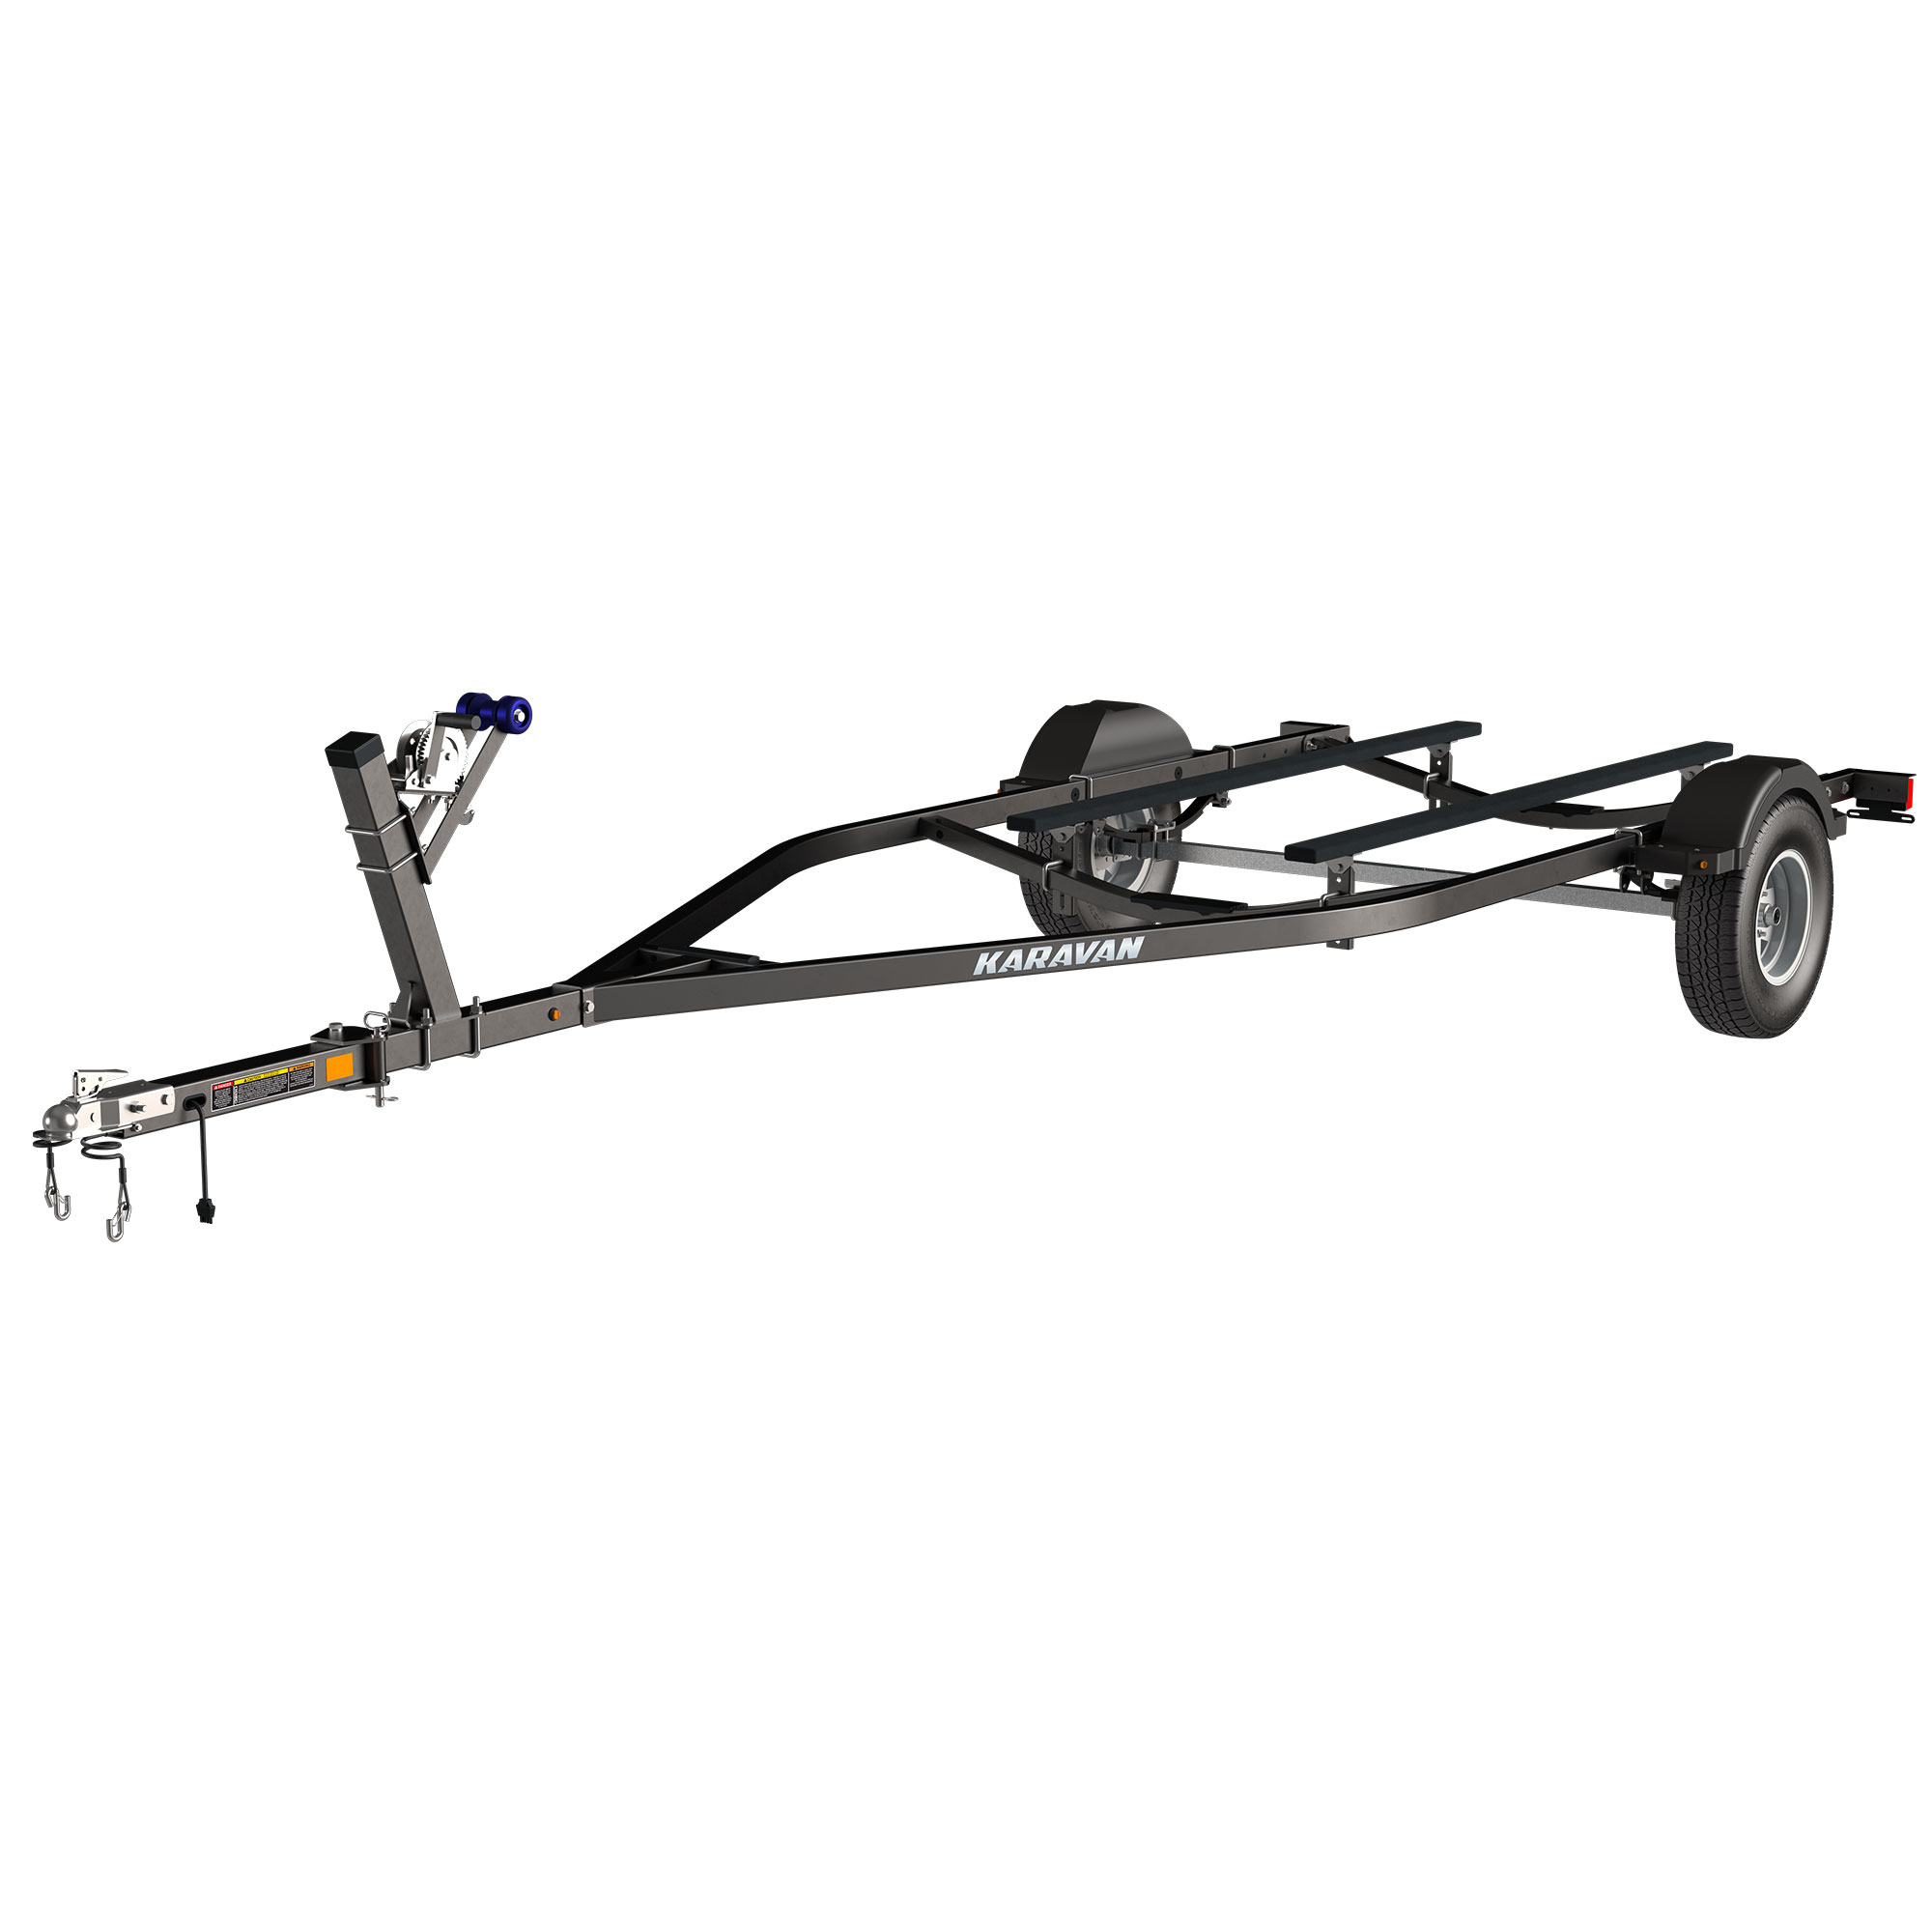 Single Axle Bunk Trailer